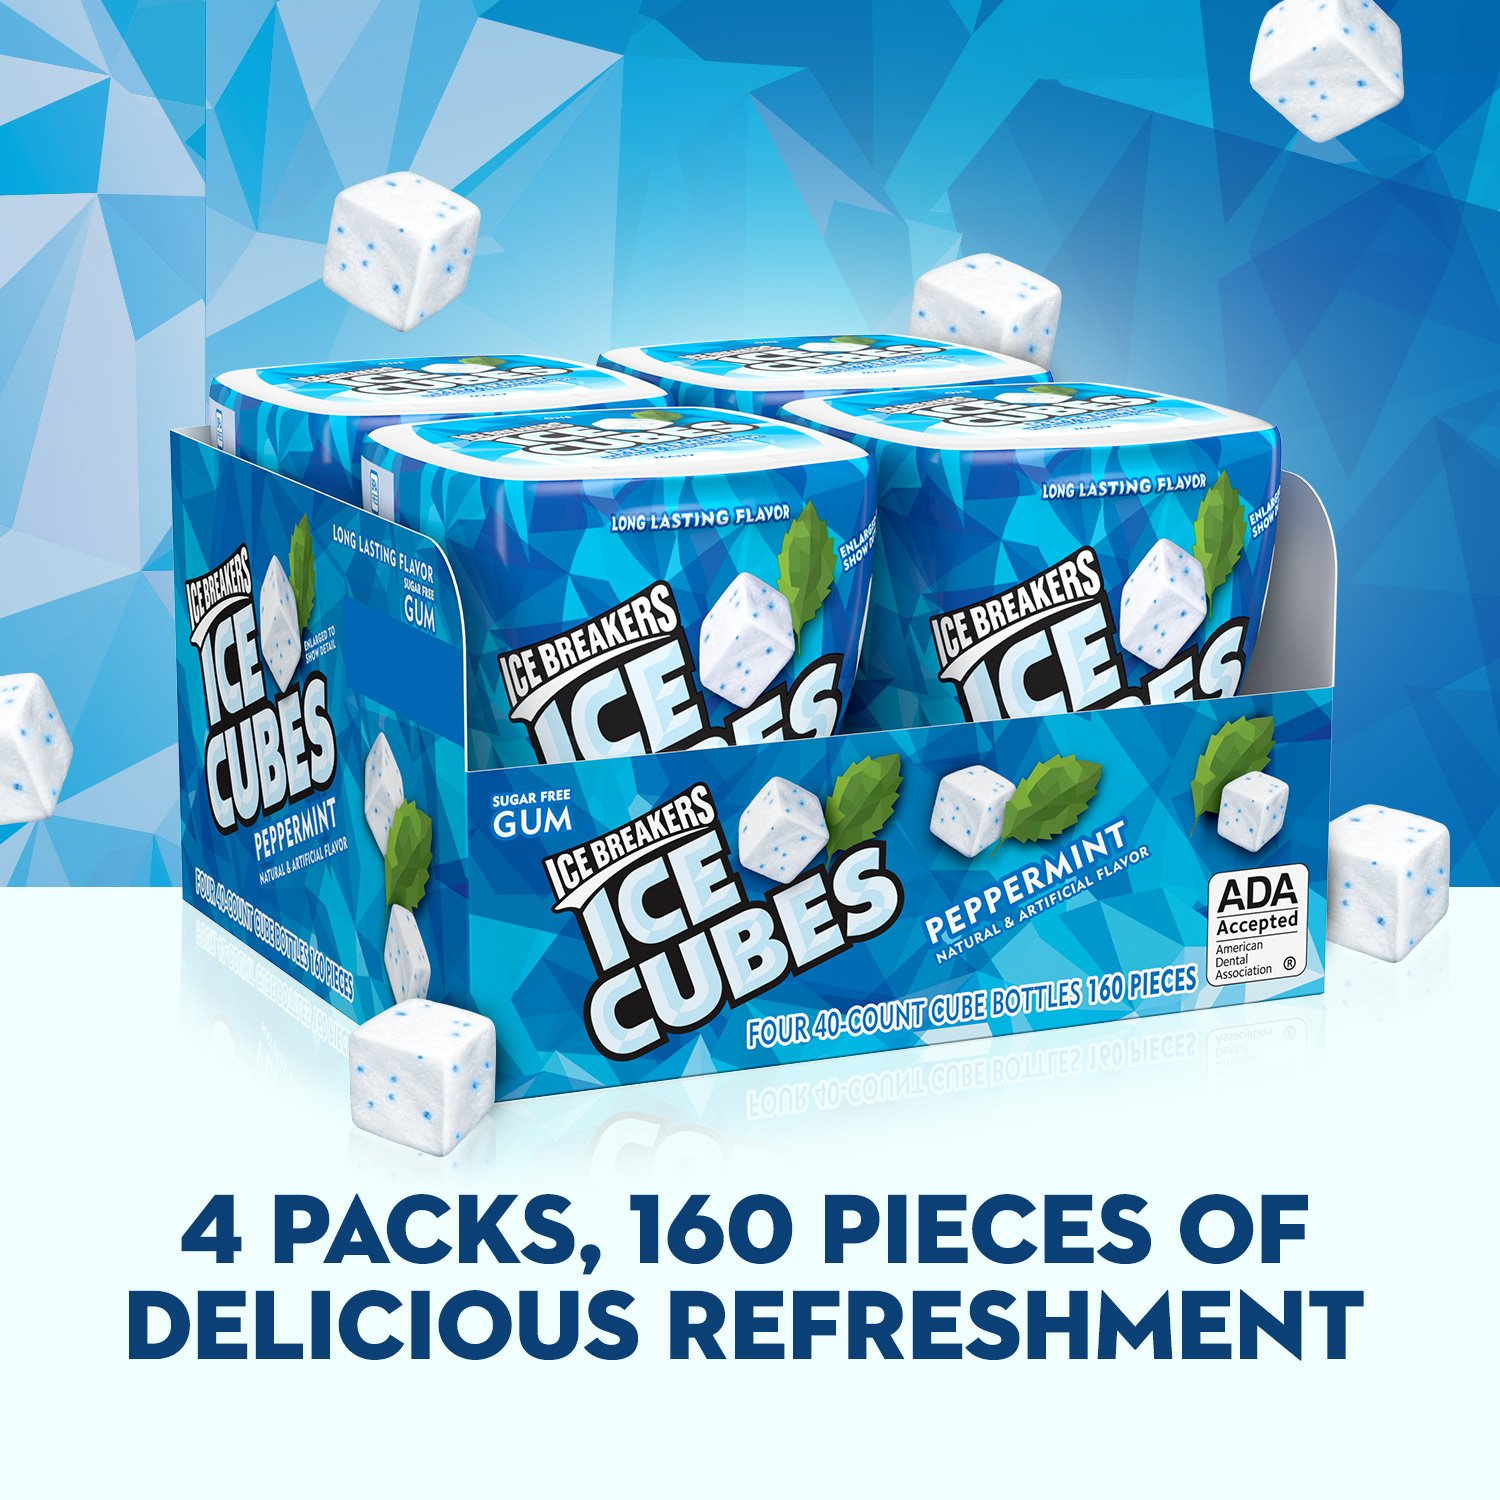 5142f1cf3e ICE BREAKERS ICE CUBES Chewing Gum, Sugar Free Peppermint, 40 pieces (Pack  of 4): Amazon.co.uk: Business, Industry & Science